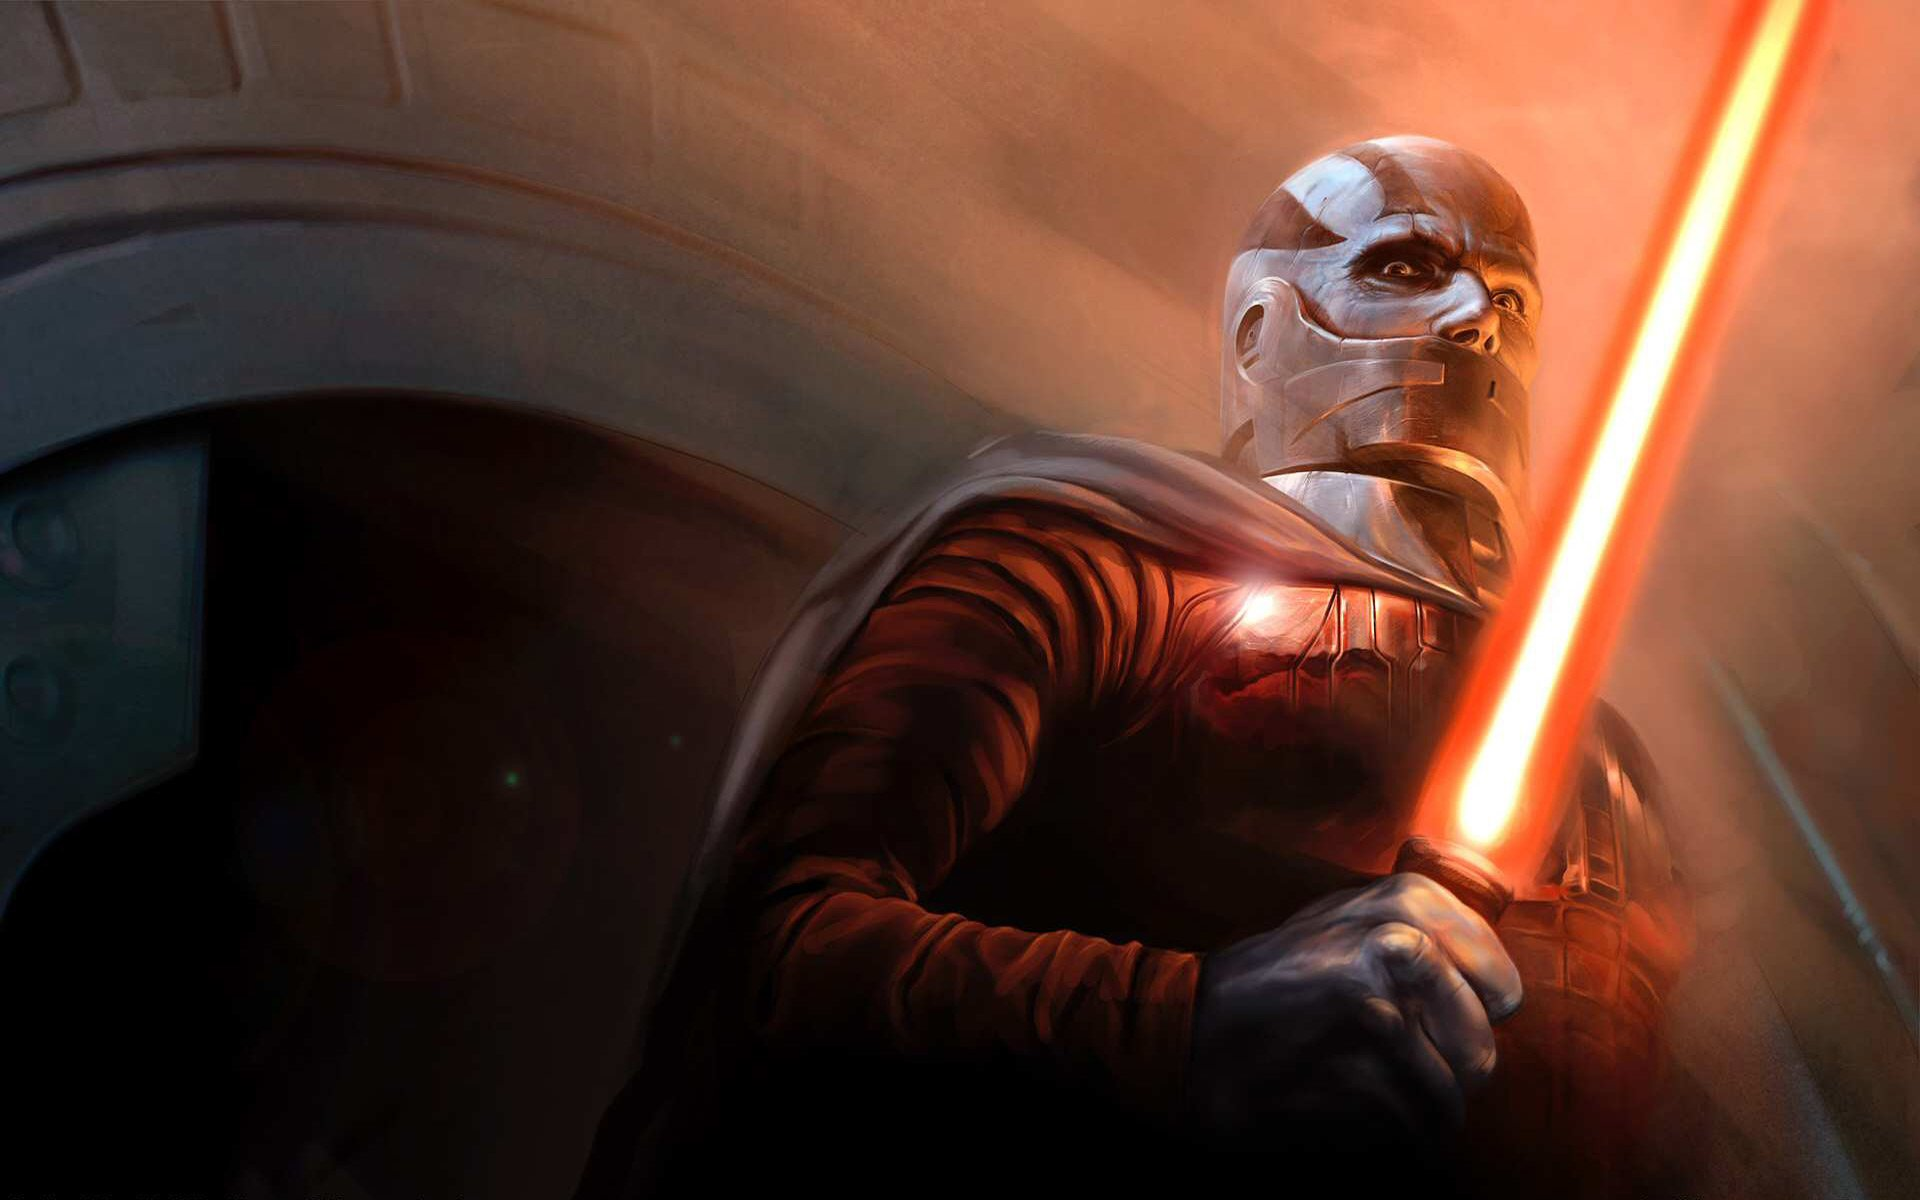 Sith Lord Old Republic Hd Wallpaper Background Image 1920x1200 Id 107424 Wallpaper Abyss